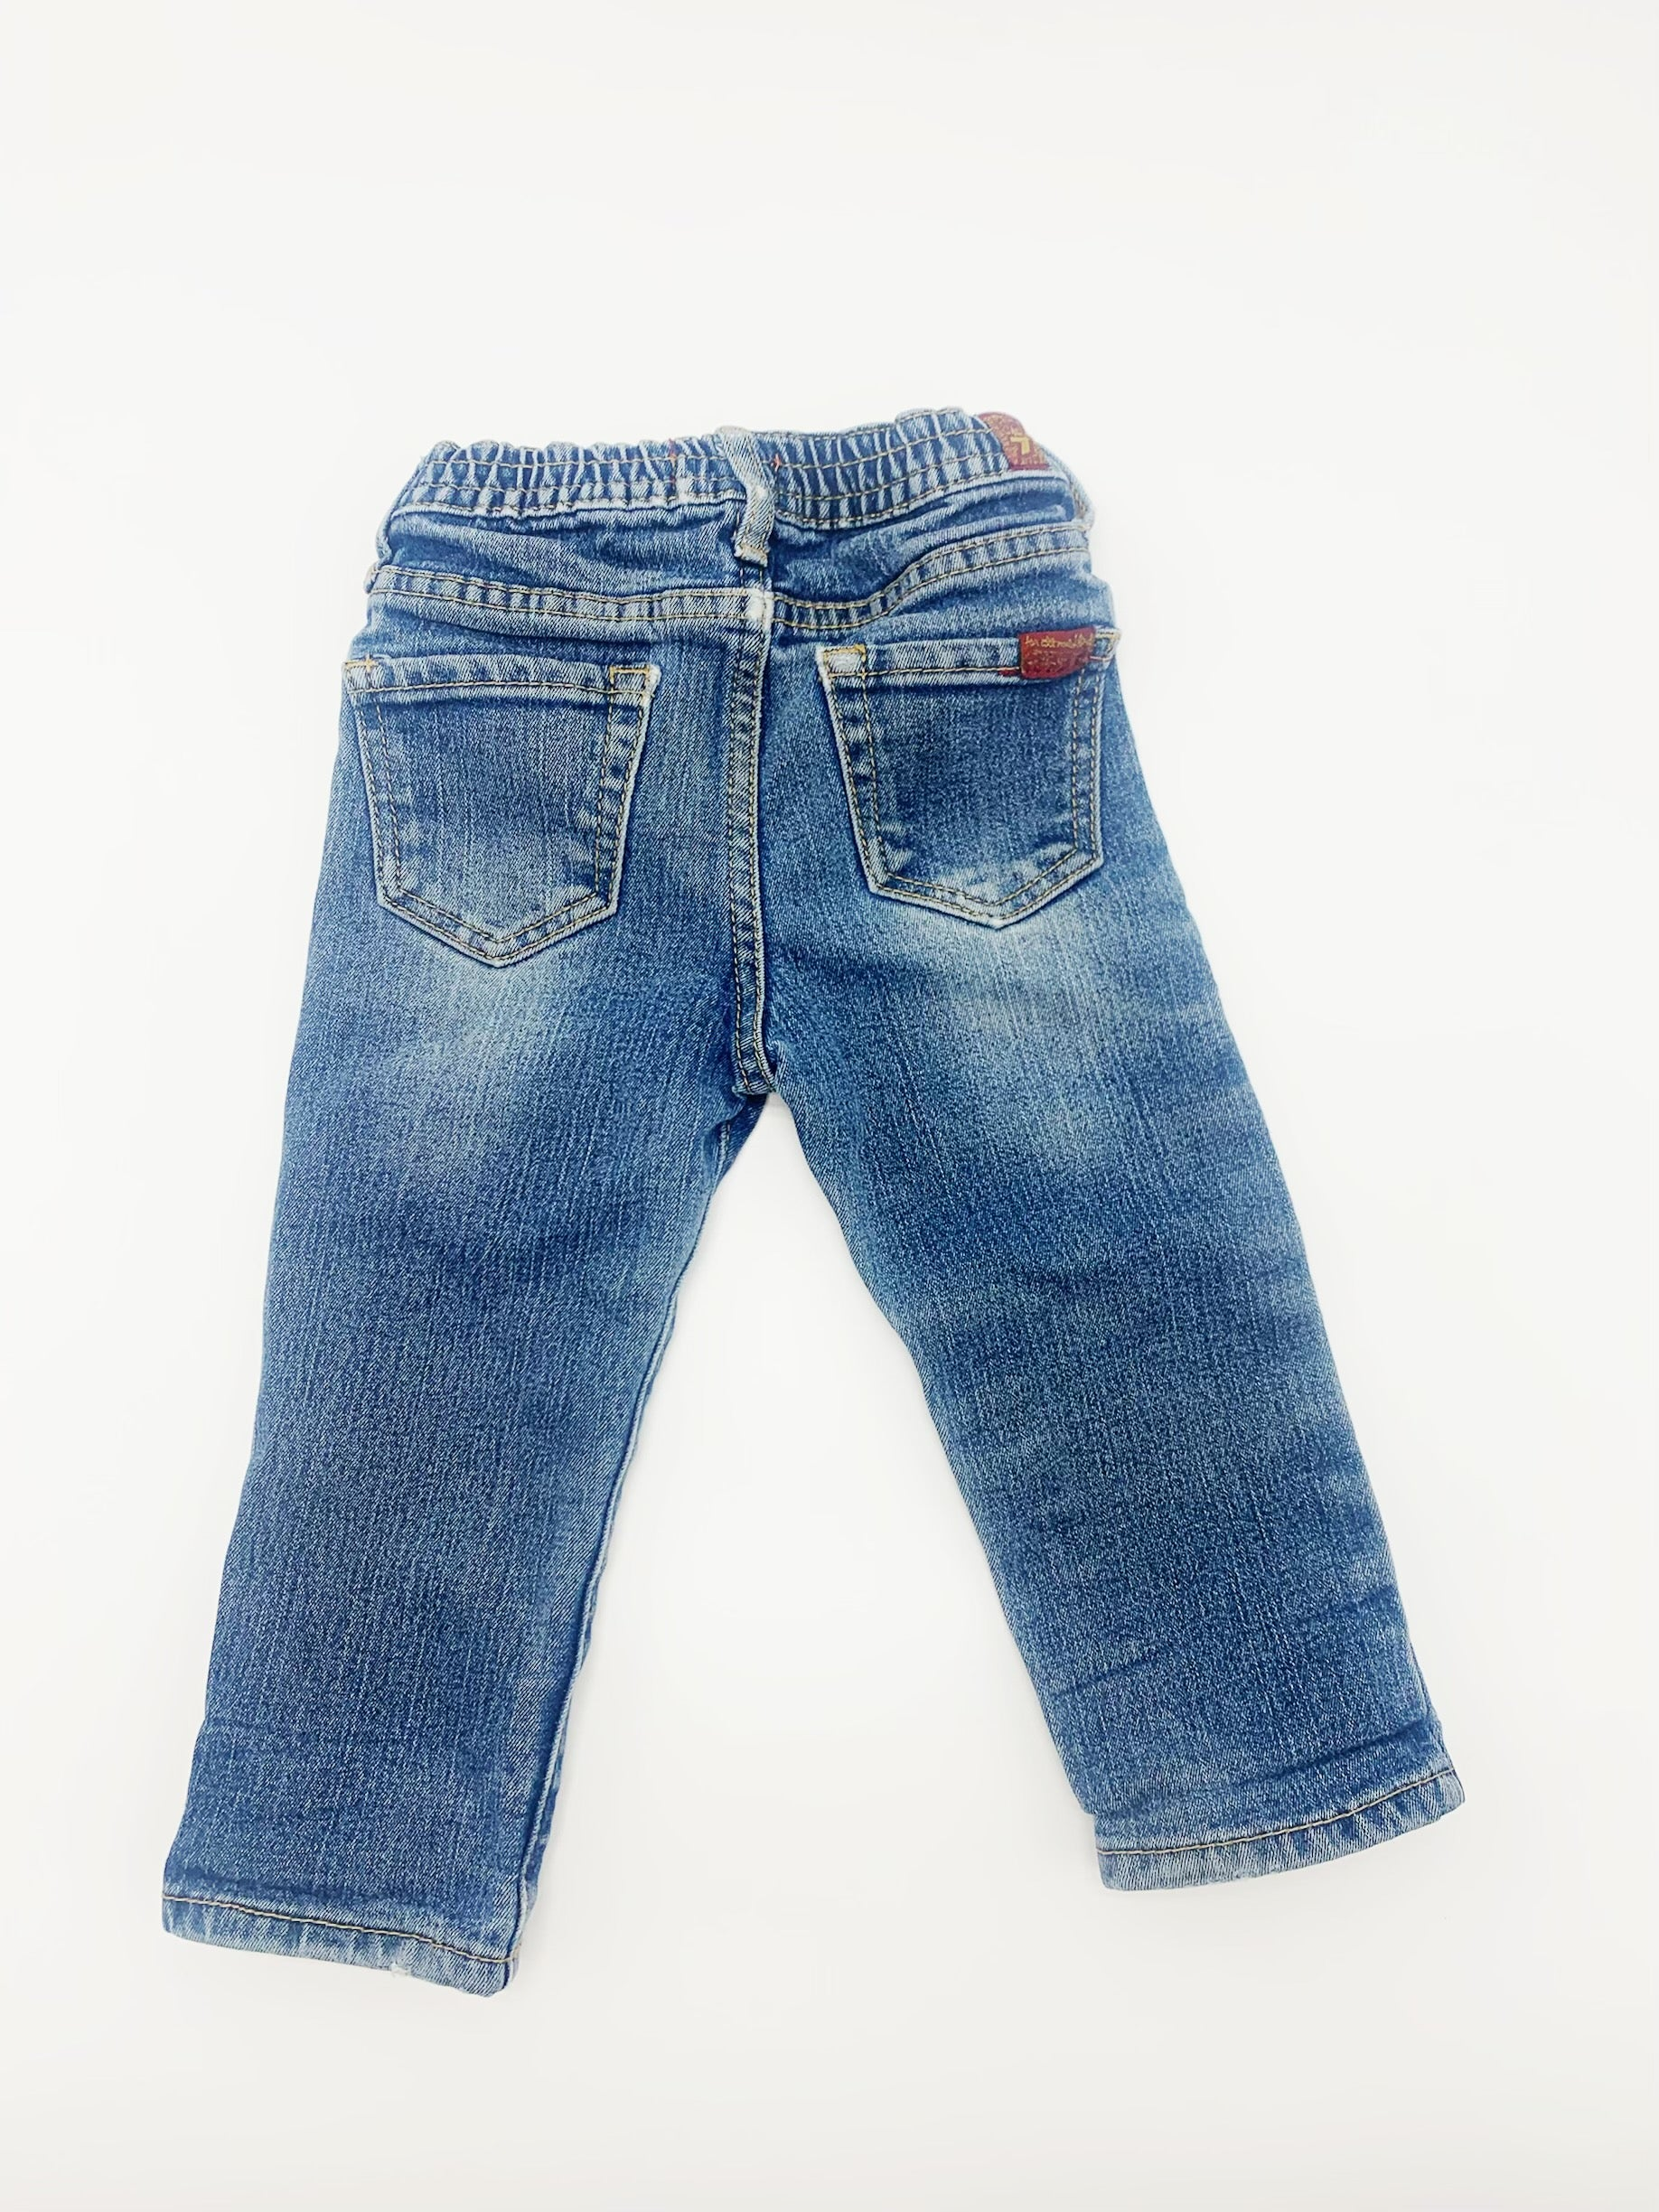 7 for all Mankind jeans size 18m